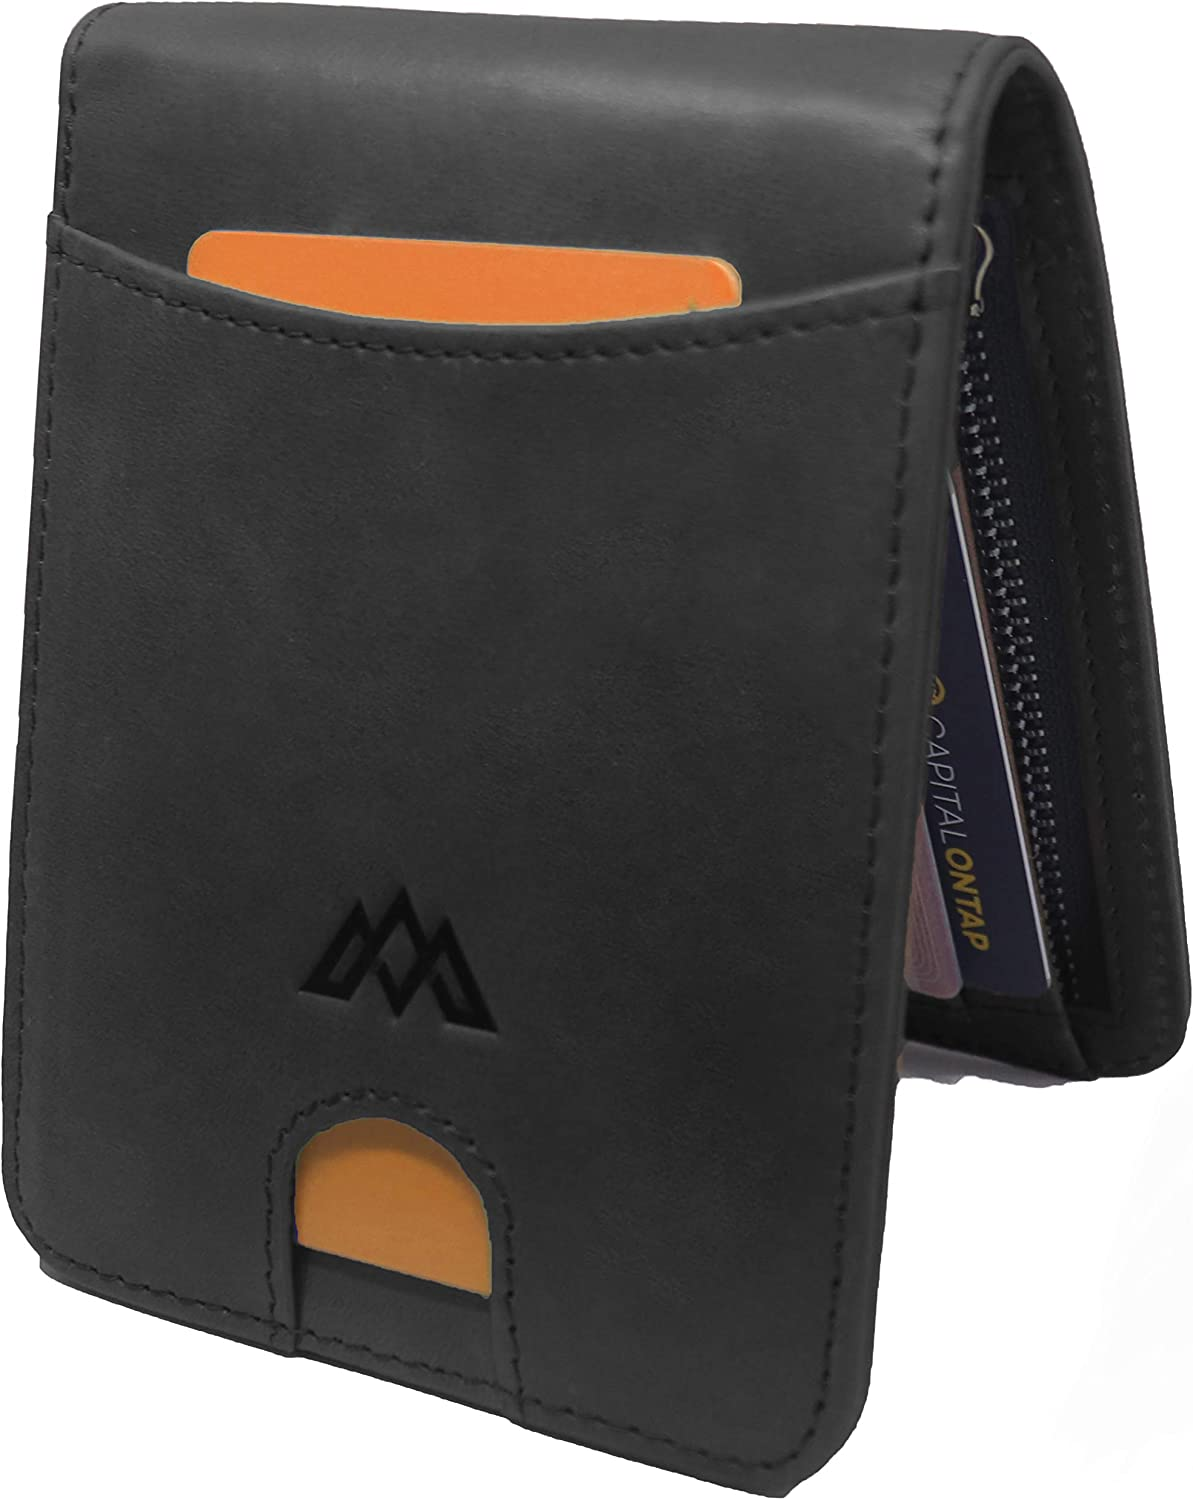 Durable Genuine Leather Travel Wallet Credit Card Holder Up to 16 Cards Black Mens Wallet RFID Blocking with Ultra Slim Wallet Design Stylish Minimalist Mini Wallet with Gift Box Gift for Men